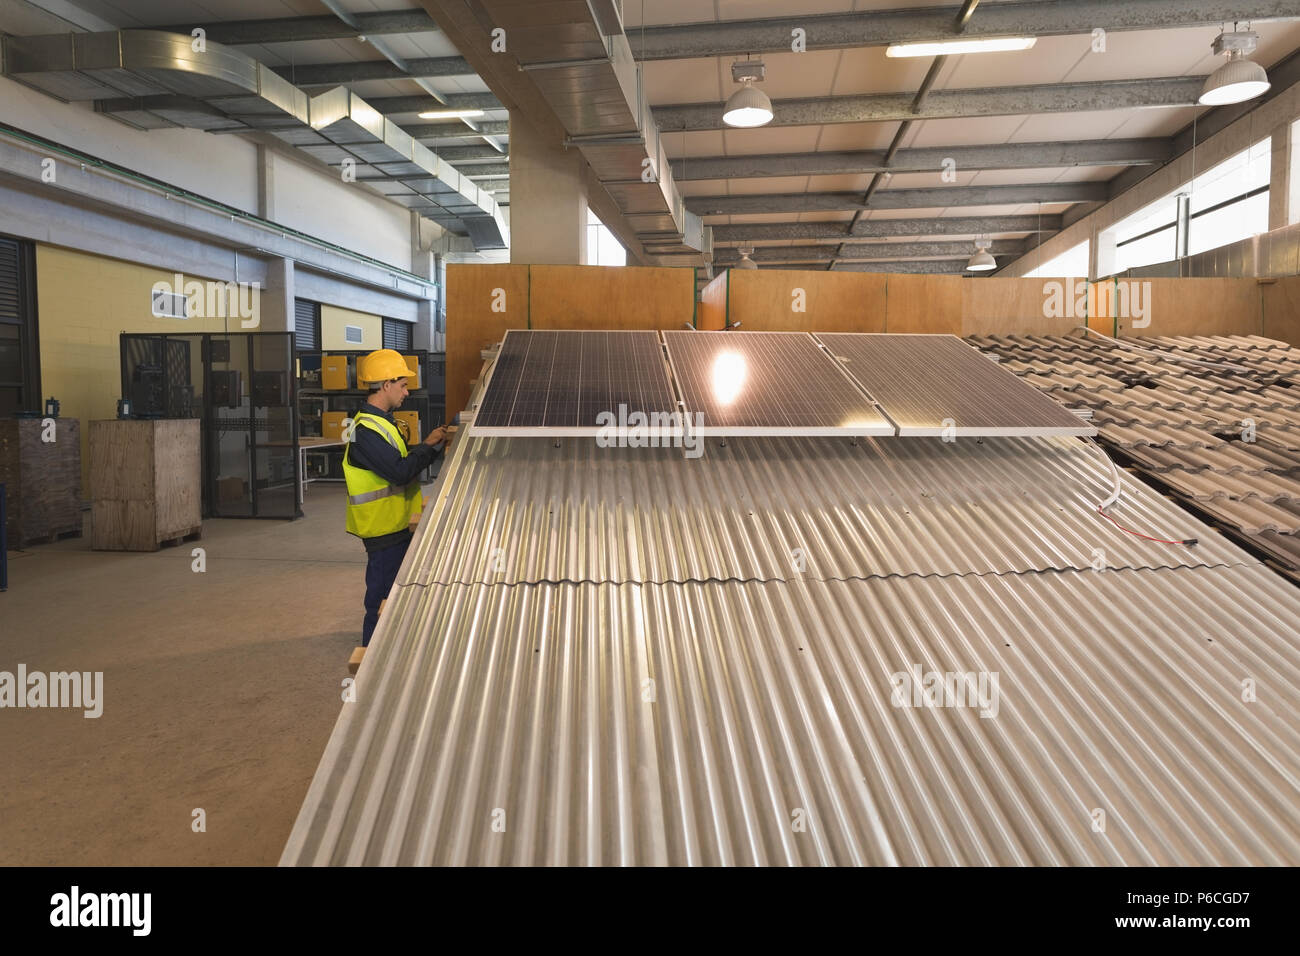 Male worker working on solar panel - Stock Image